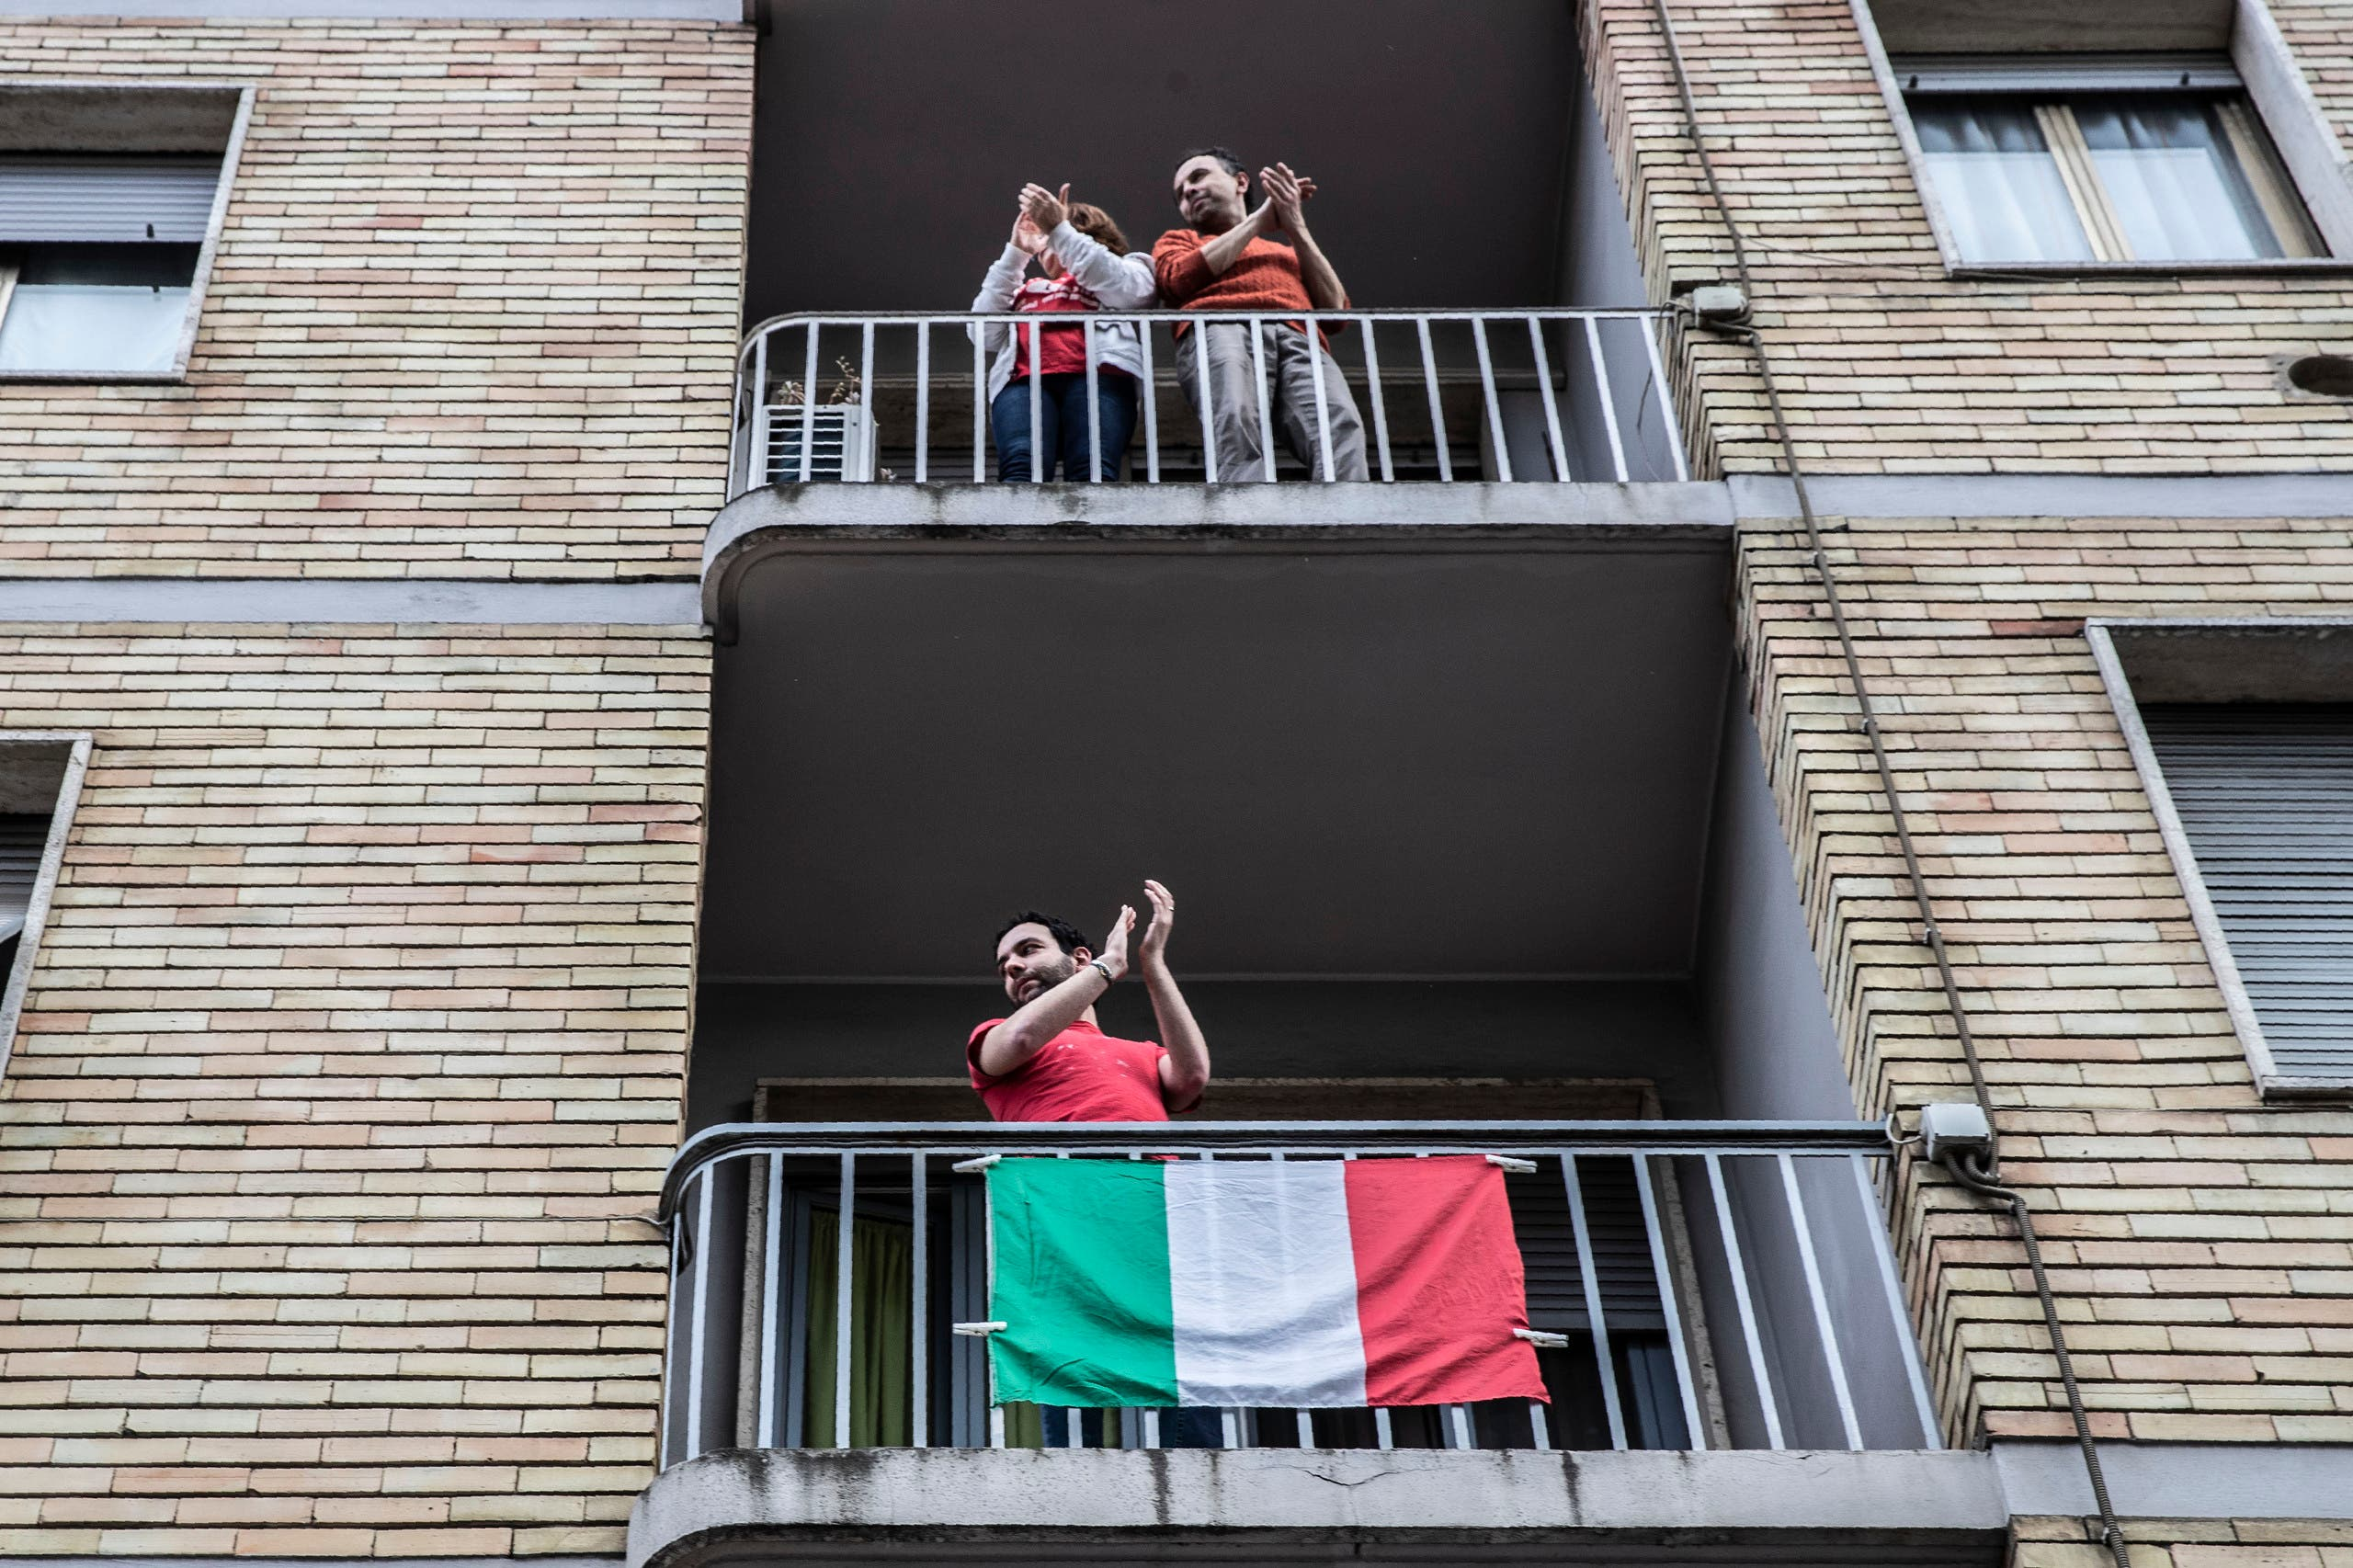 People applaud from balconies in front of the house of 23-year-old Italian volunteer Silvia Costanza Romano, in Milan, Italy on May, 10, 2020. (AP)